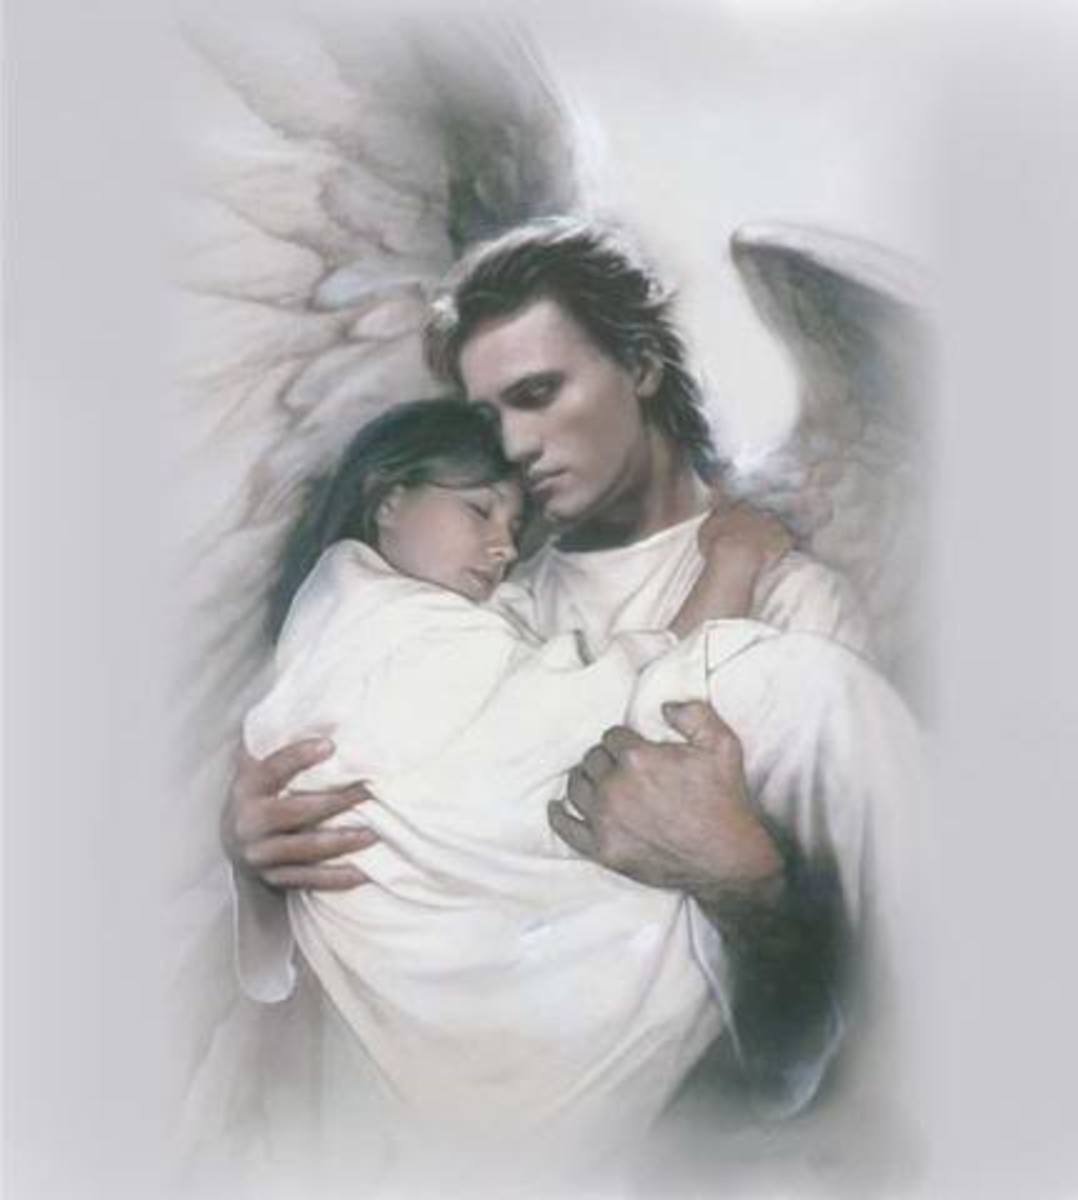 You carried me safe from harm. You are my Guardian Angel.